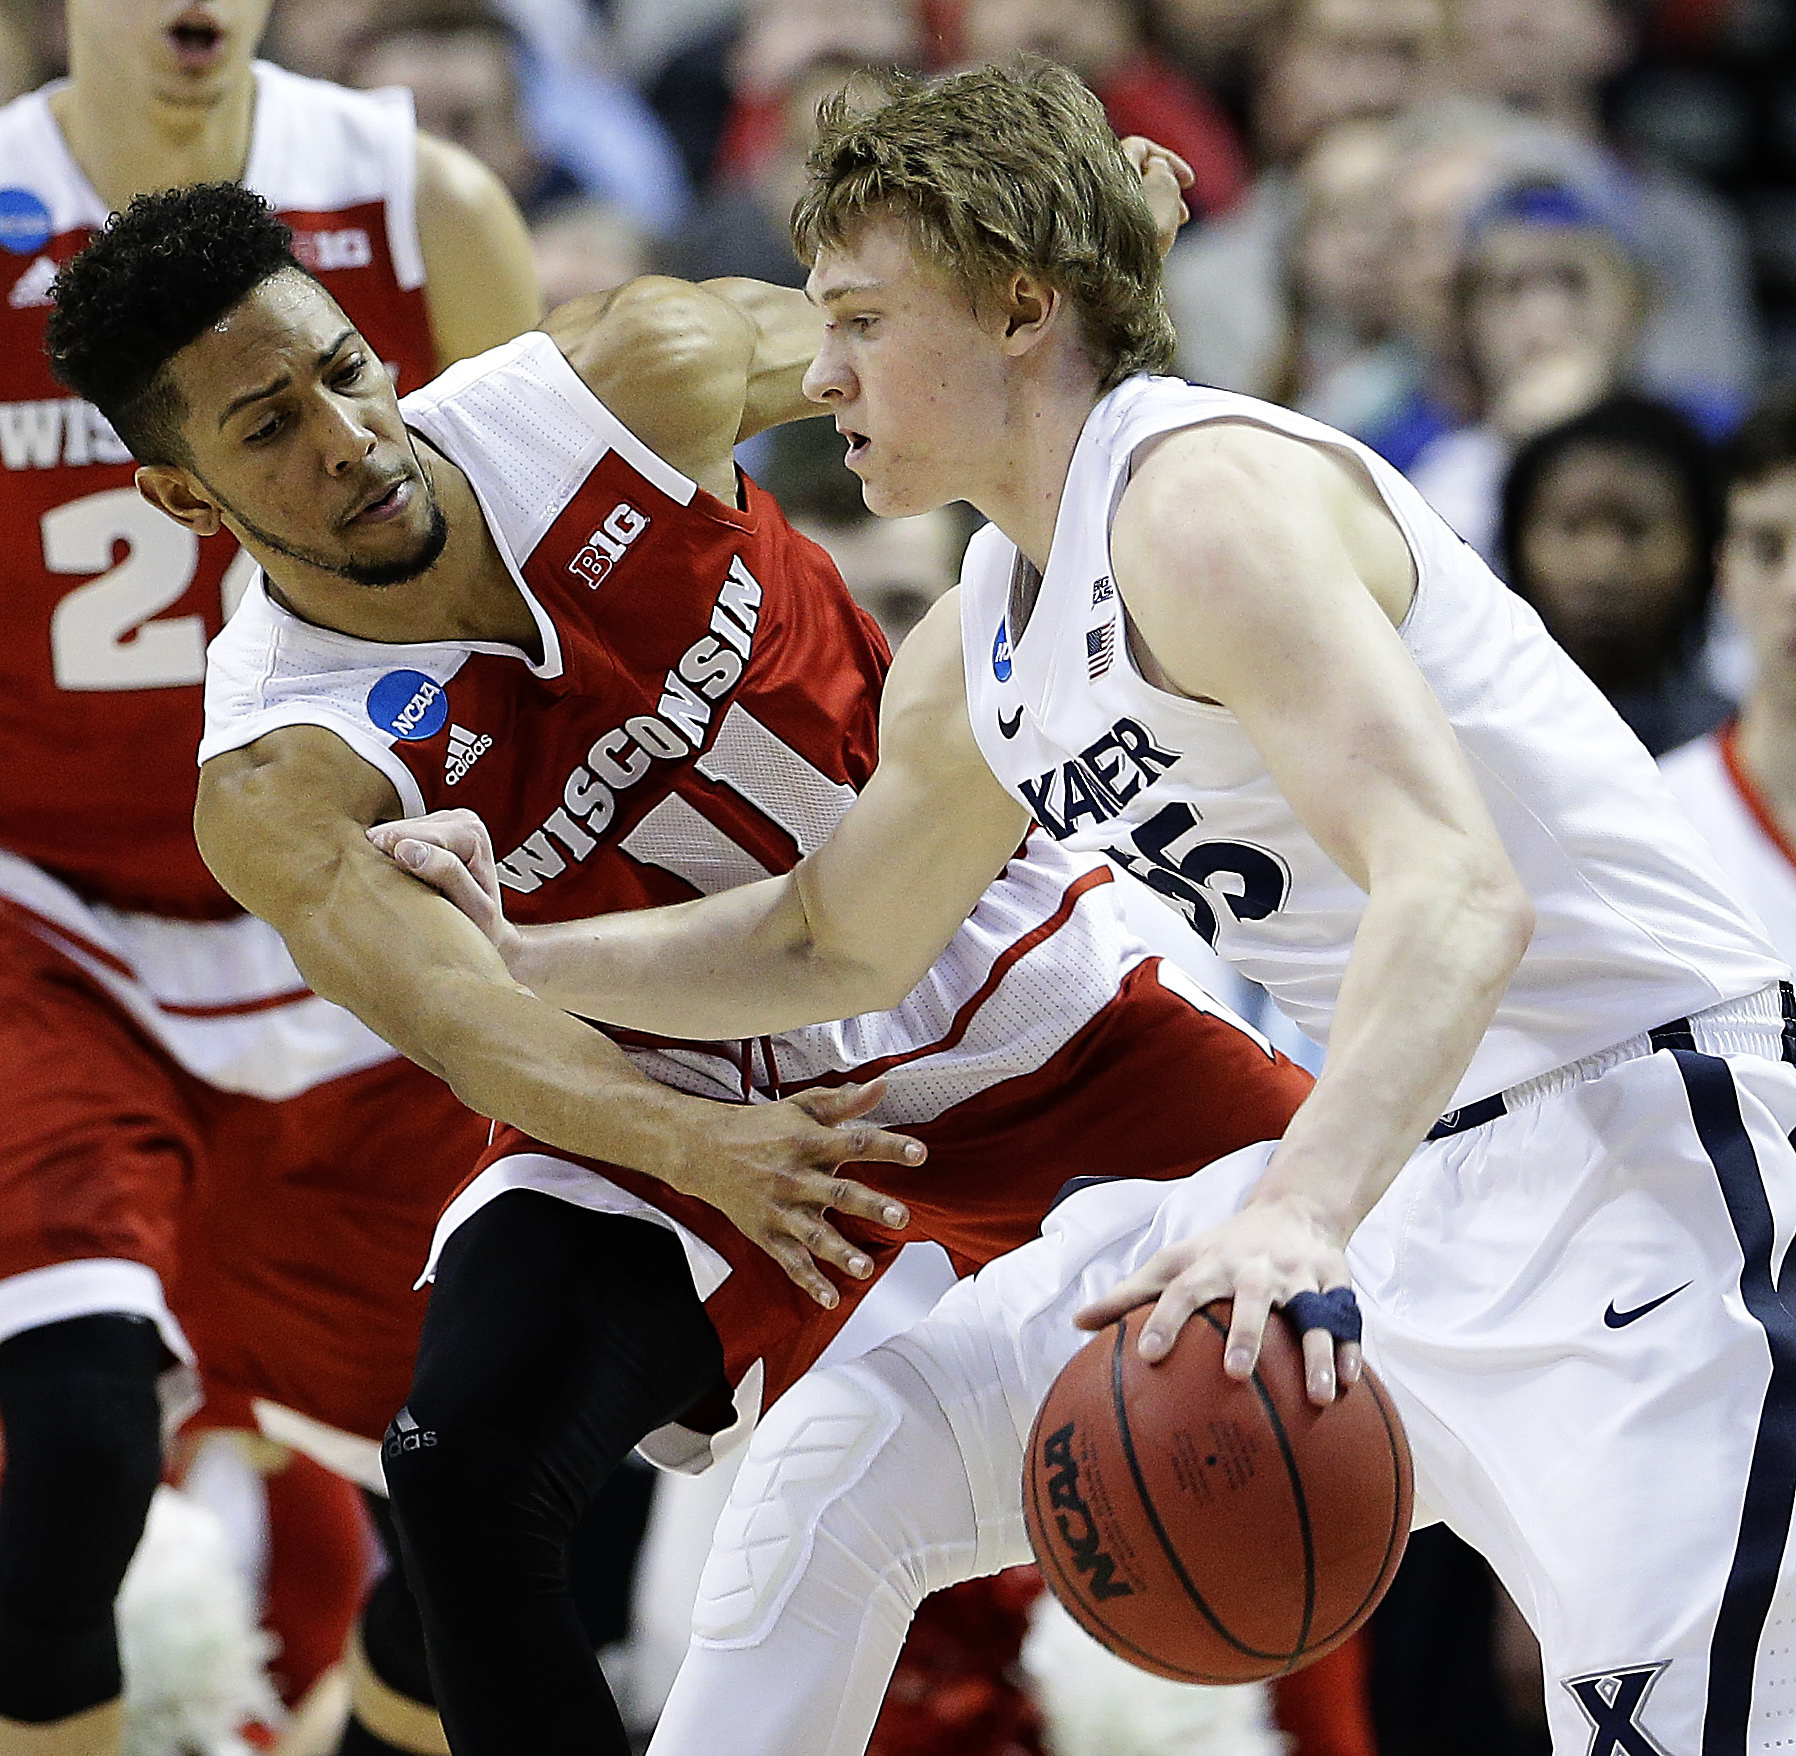 Wisconsin's Jordan Hill (11) tries to steal the ball from Xavier's J.P. Macura (55) during the first half of a second-round men's college basketball game against Wisconsin in the NCAA Tournament, Sunday, March 20, 2016, in St. Louis. (AP Photo/Charlie Rie